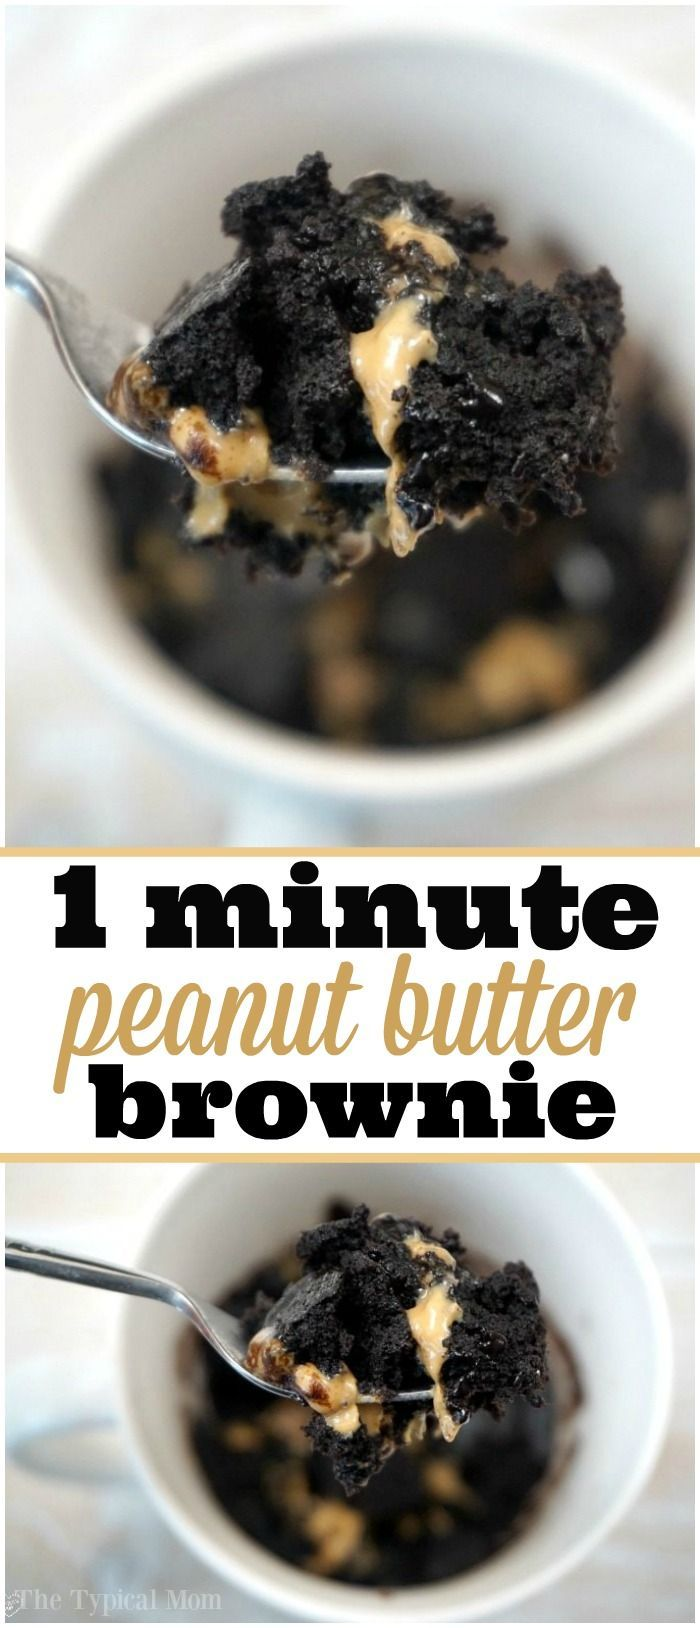 Peanut butter brownie in a mug recipe, it's amazing!! Throw it all together, stick in the microwave for 1 min. and it's done! #brownie #mug #easy #cookie #peanutbutter via @thetypicalmom